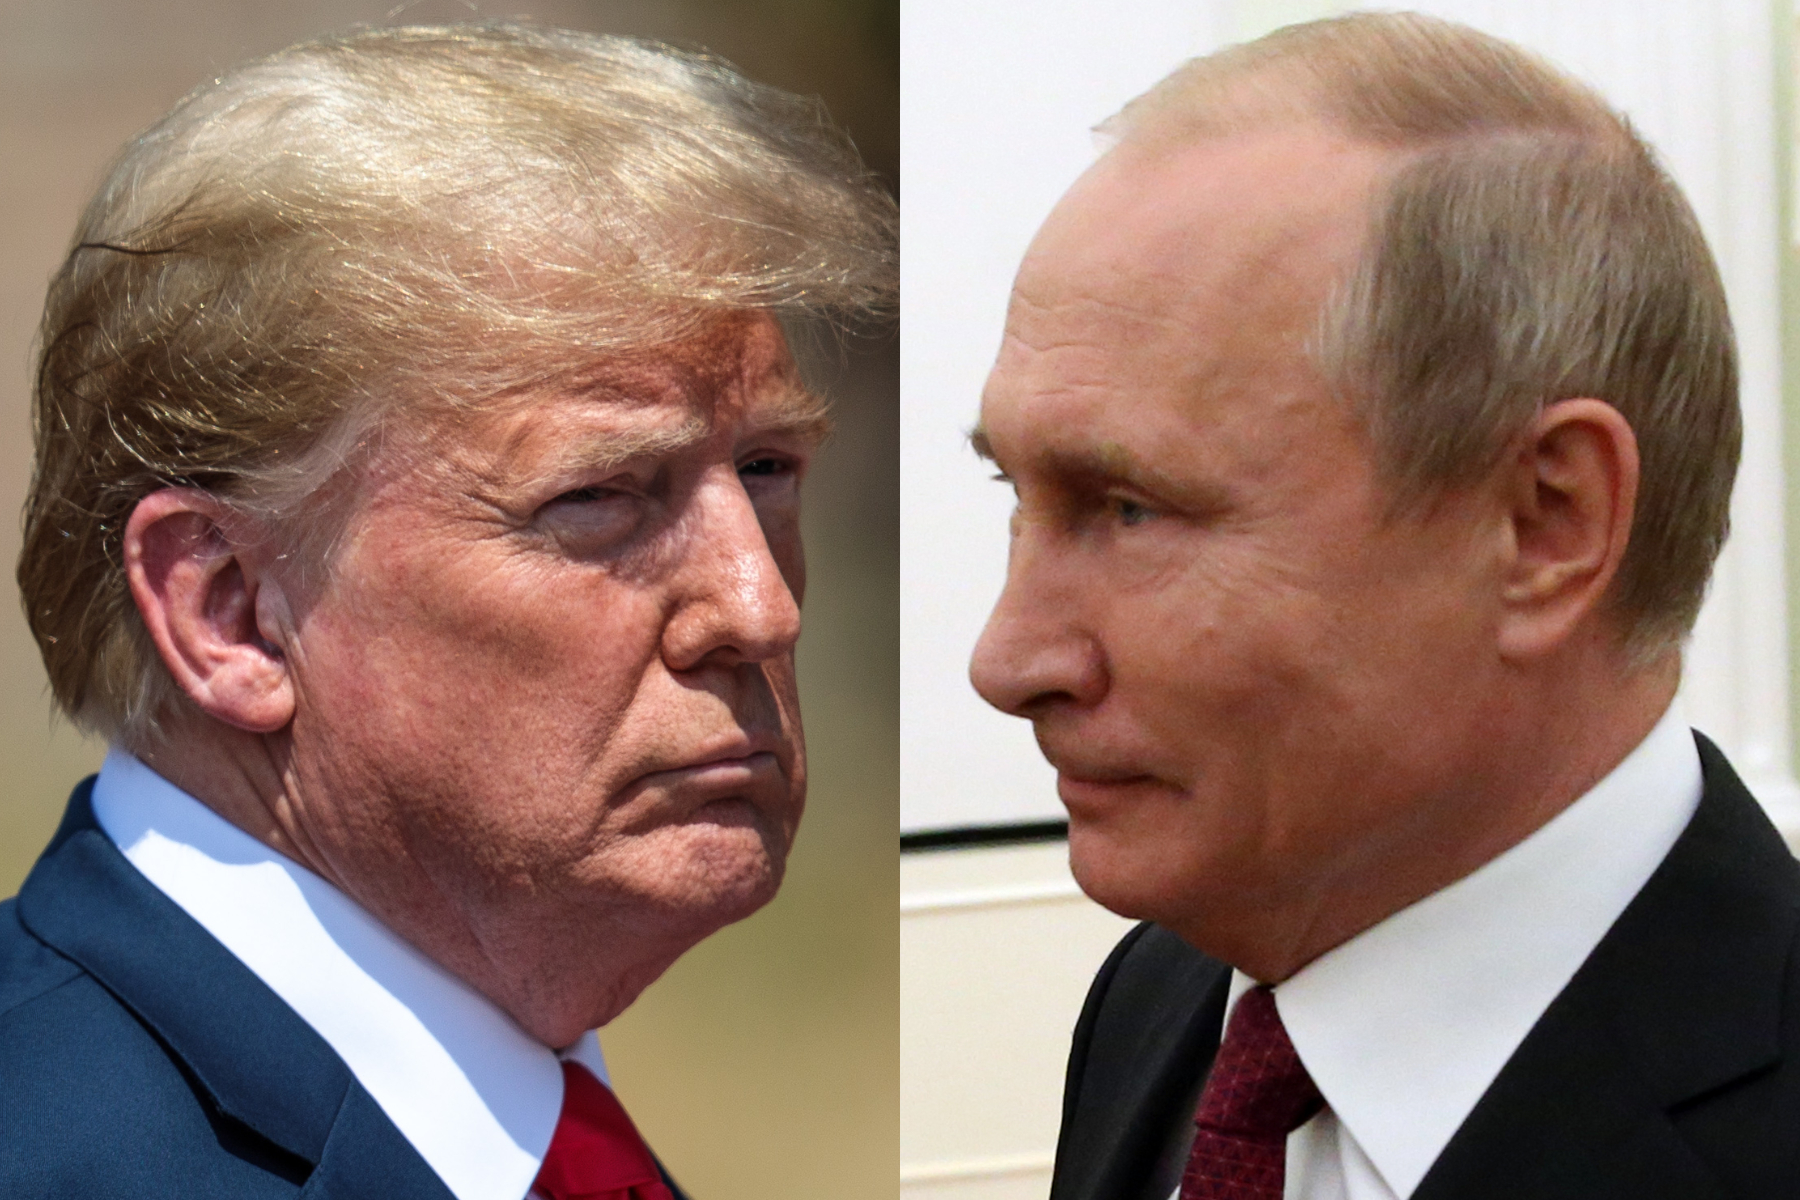 The 4 Key Things To Watch For At The Trump Putin